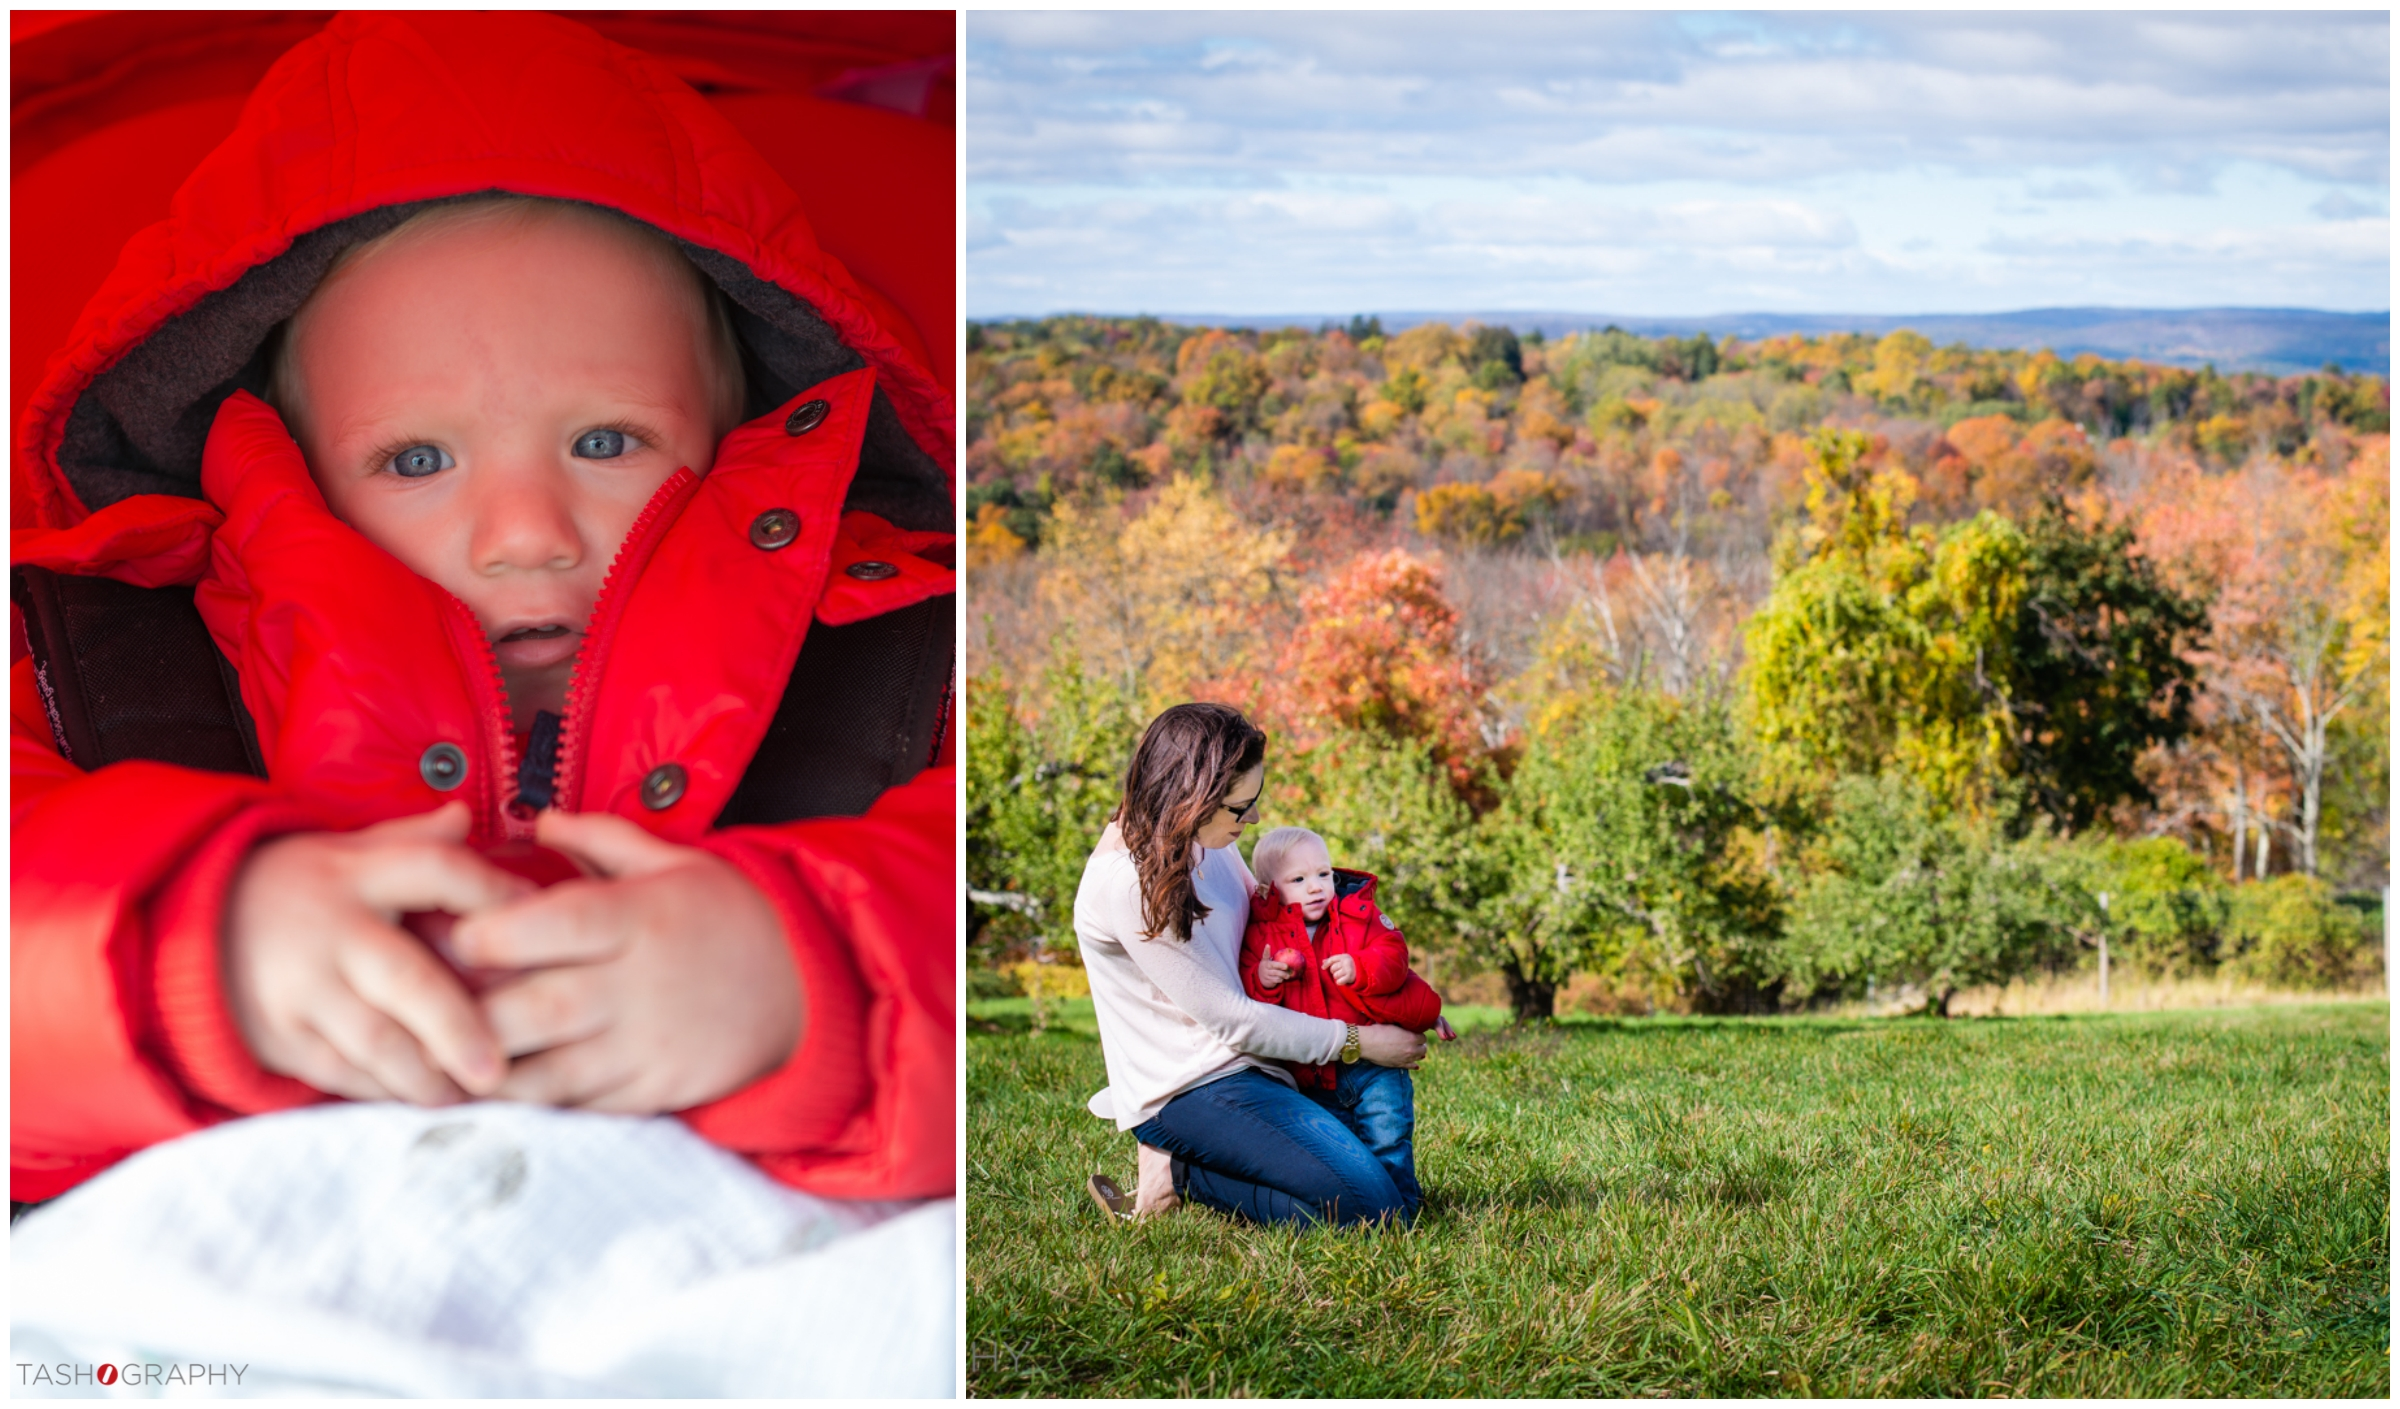 We enjoyed beautiful views at Wilkens Farm as the leaves had just started changing.